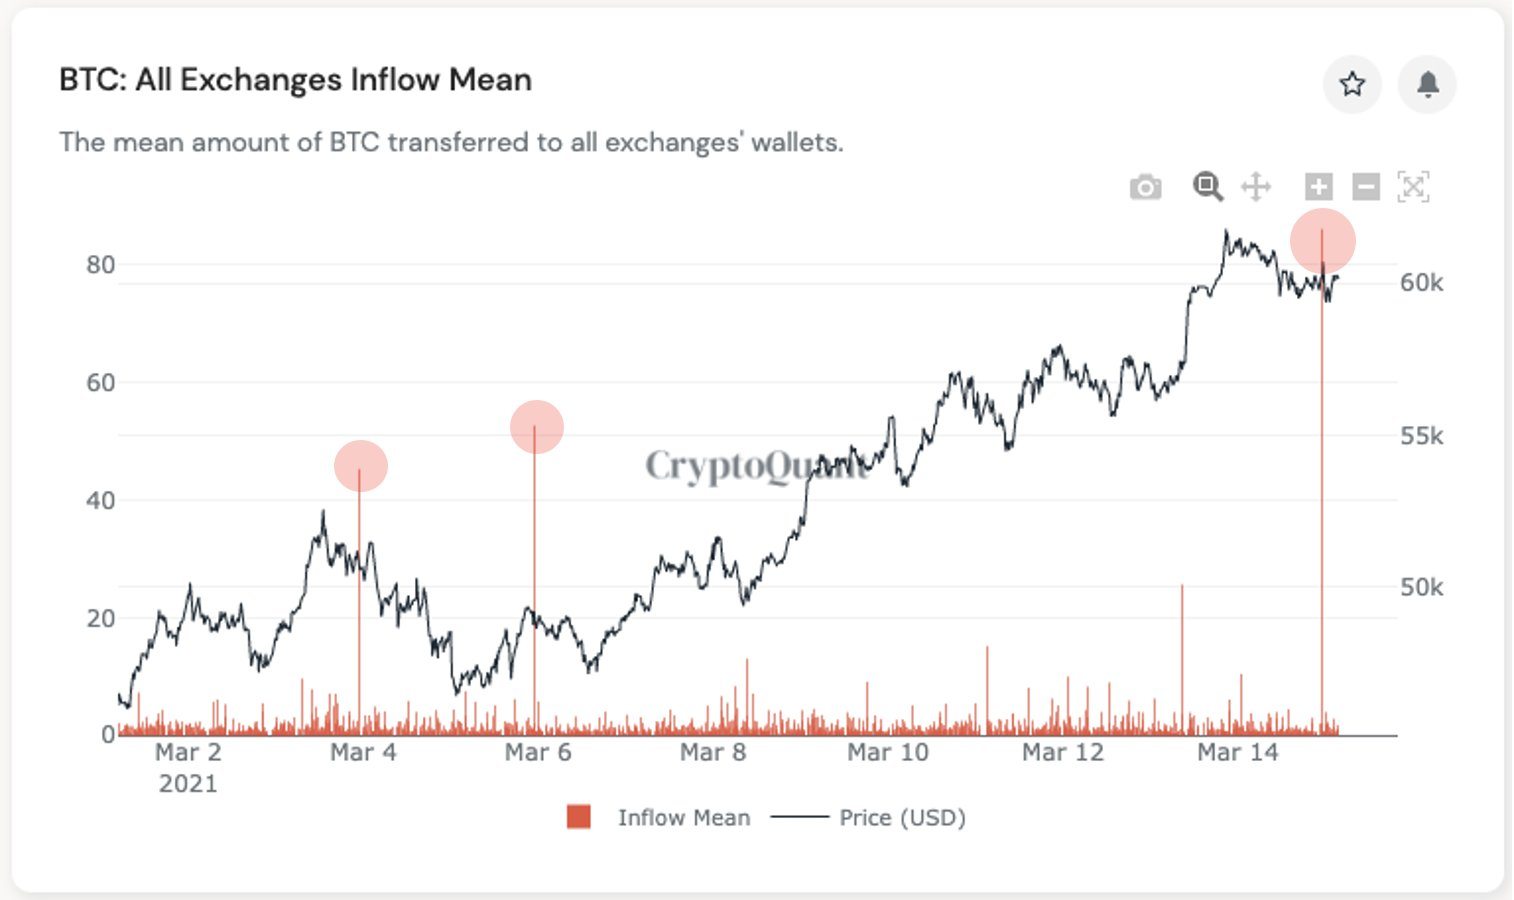 Bitcoin all exchanges inflow mean. Source: CryptoQuant